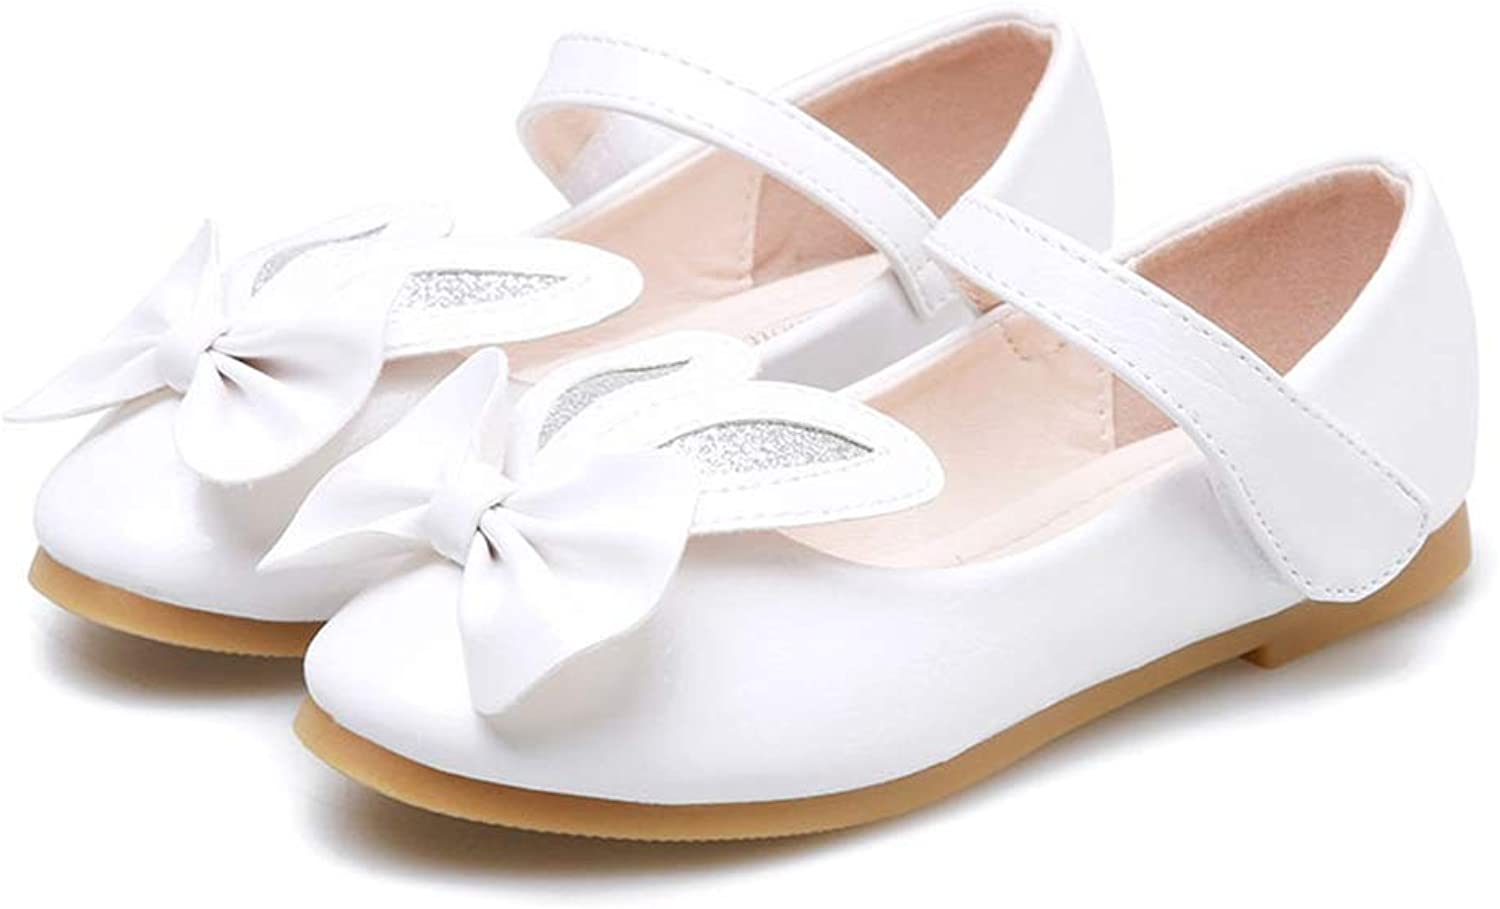 FOXMY Girls Adorable Bowknot Rabbit's Ears Ballet Flat Comfort Soft Breathable SlipOn Mary Jane shoes